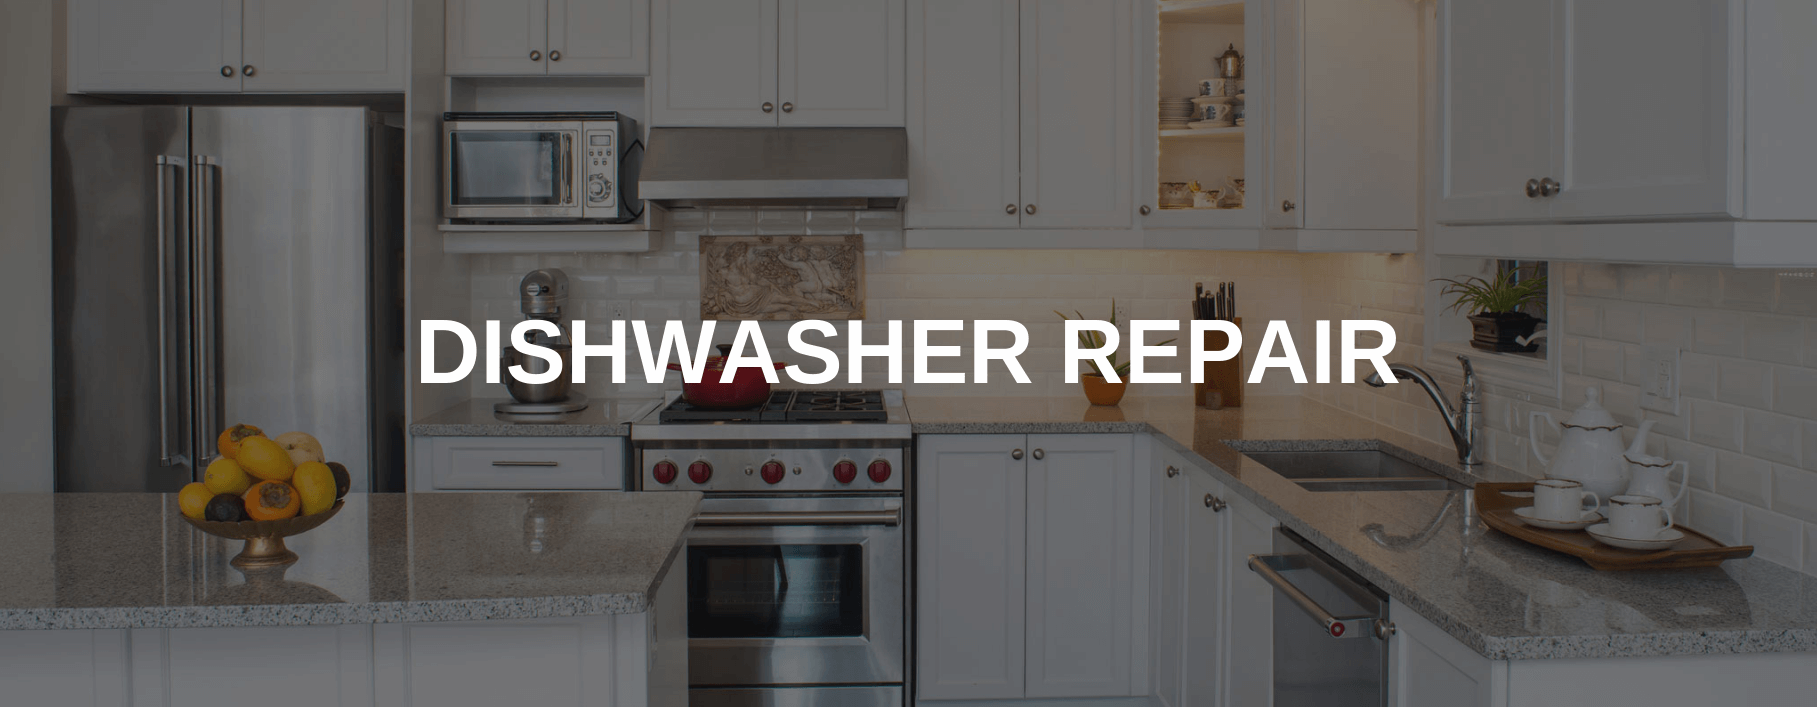 dishwasher repair brentwood